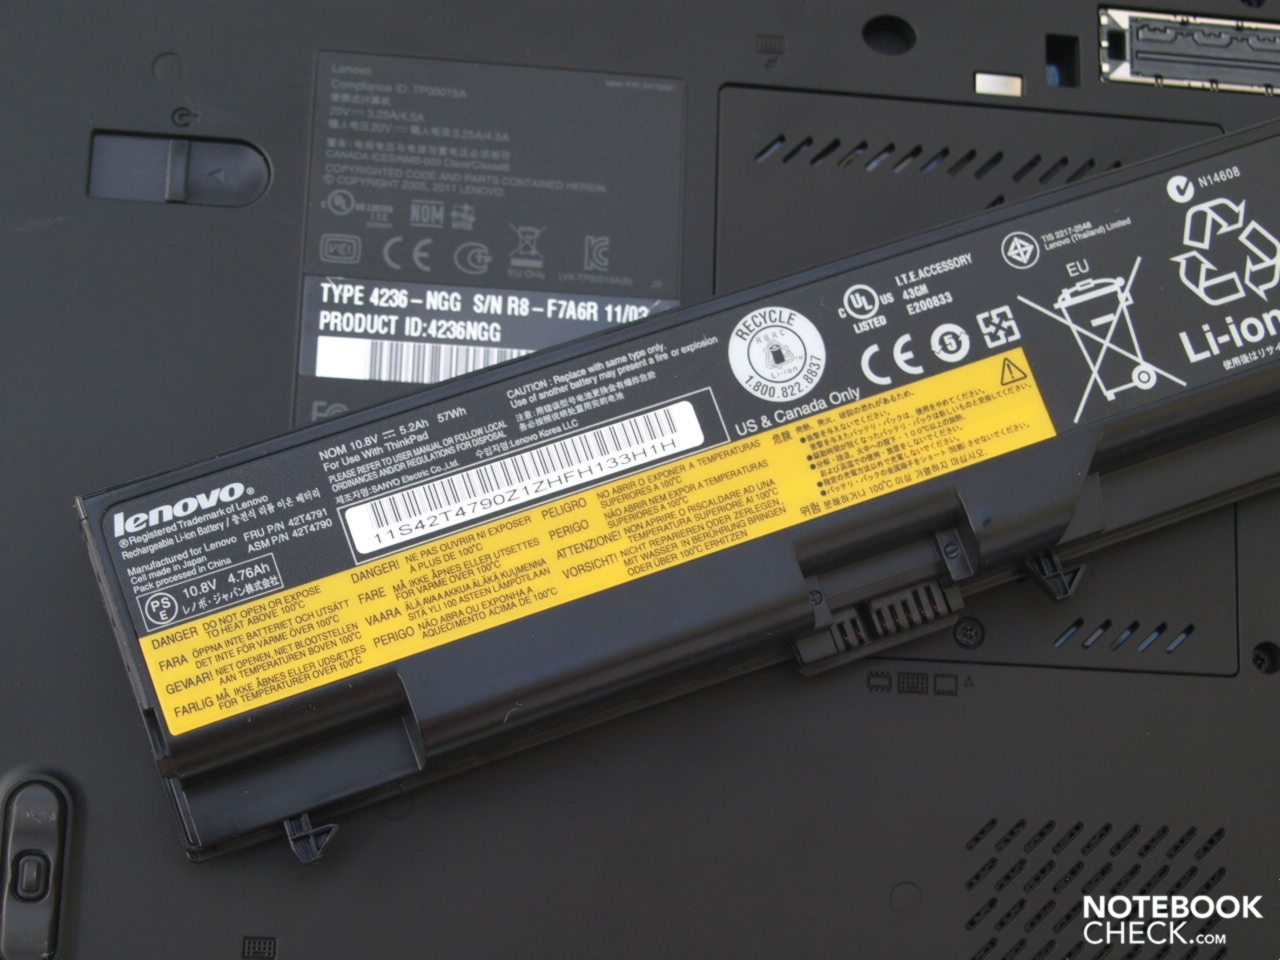 Recensione Lenovo Thinkpad T420 Notebook Notebookcheck It